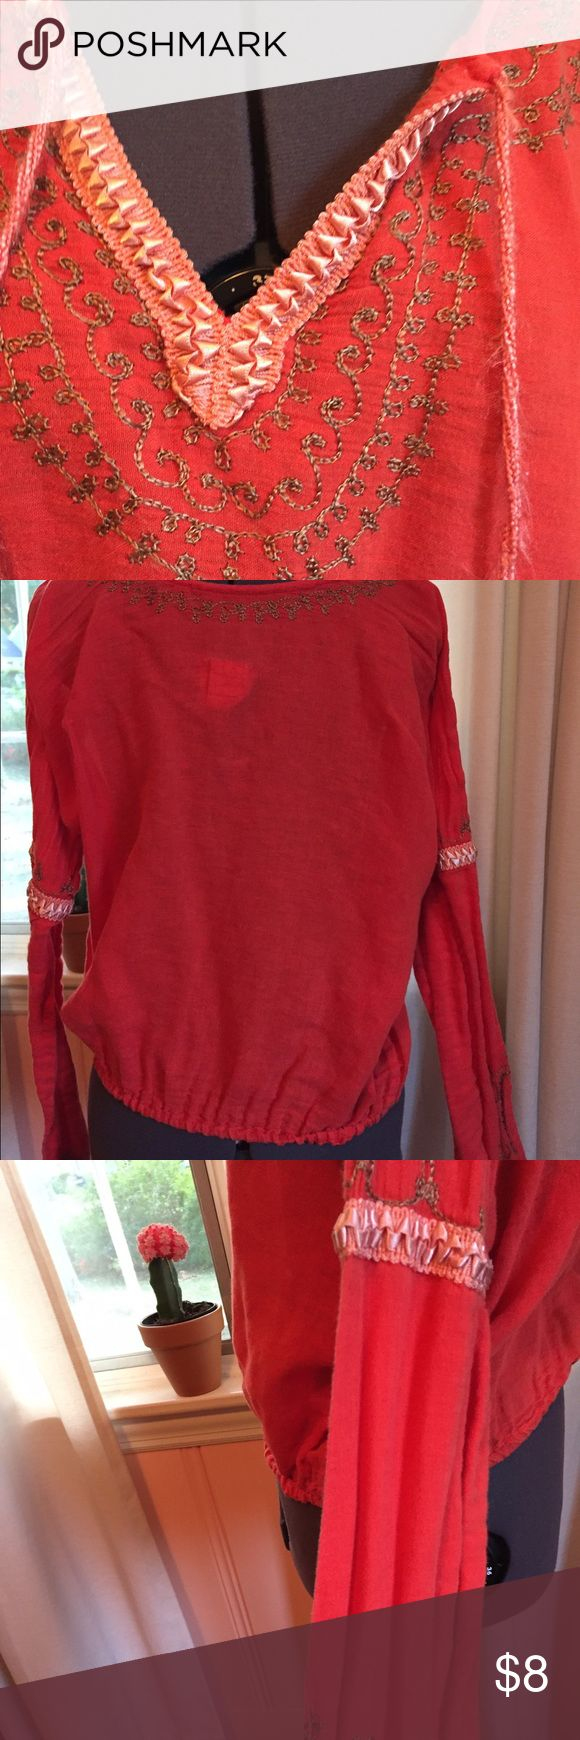 Free People festival blouse Orange color. Light fraying on strings as shown in first picture Free People Tops Blouses